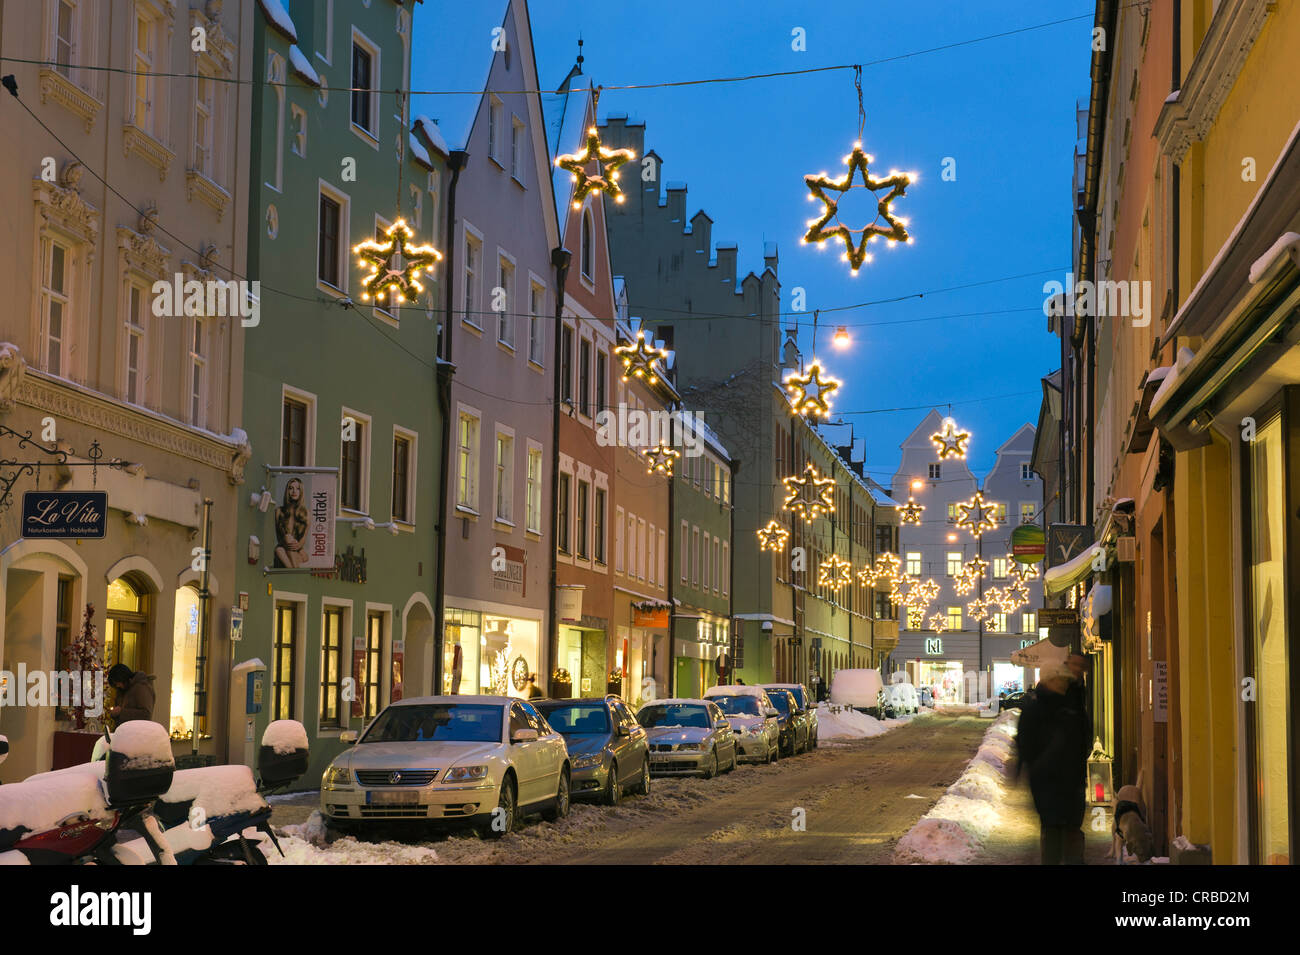 Street with Christmas decorations in winter, Landshut ...